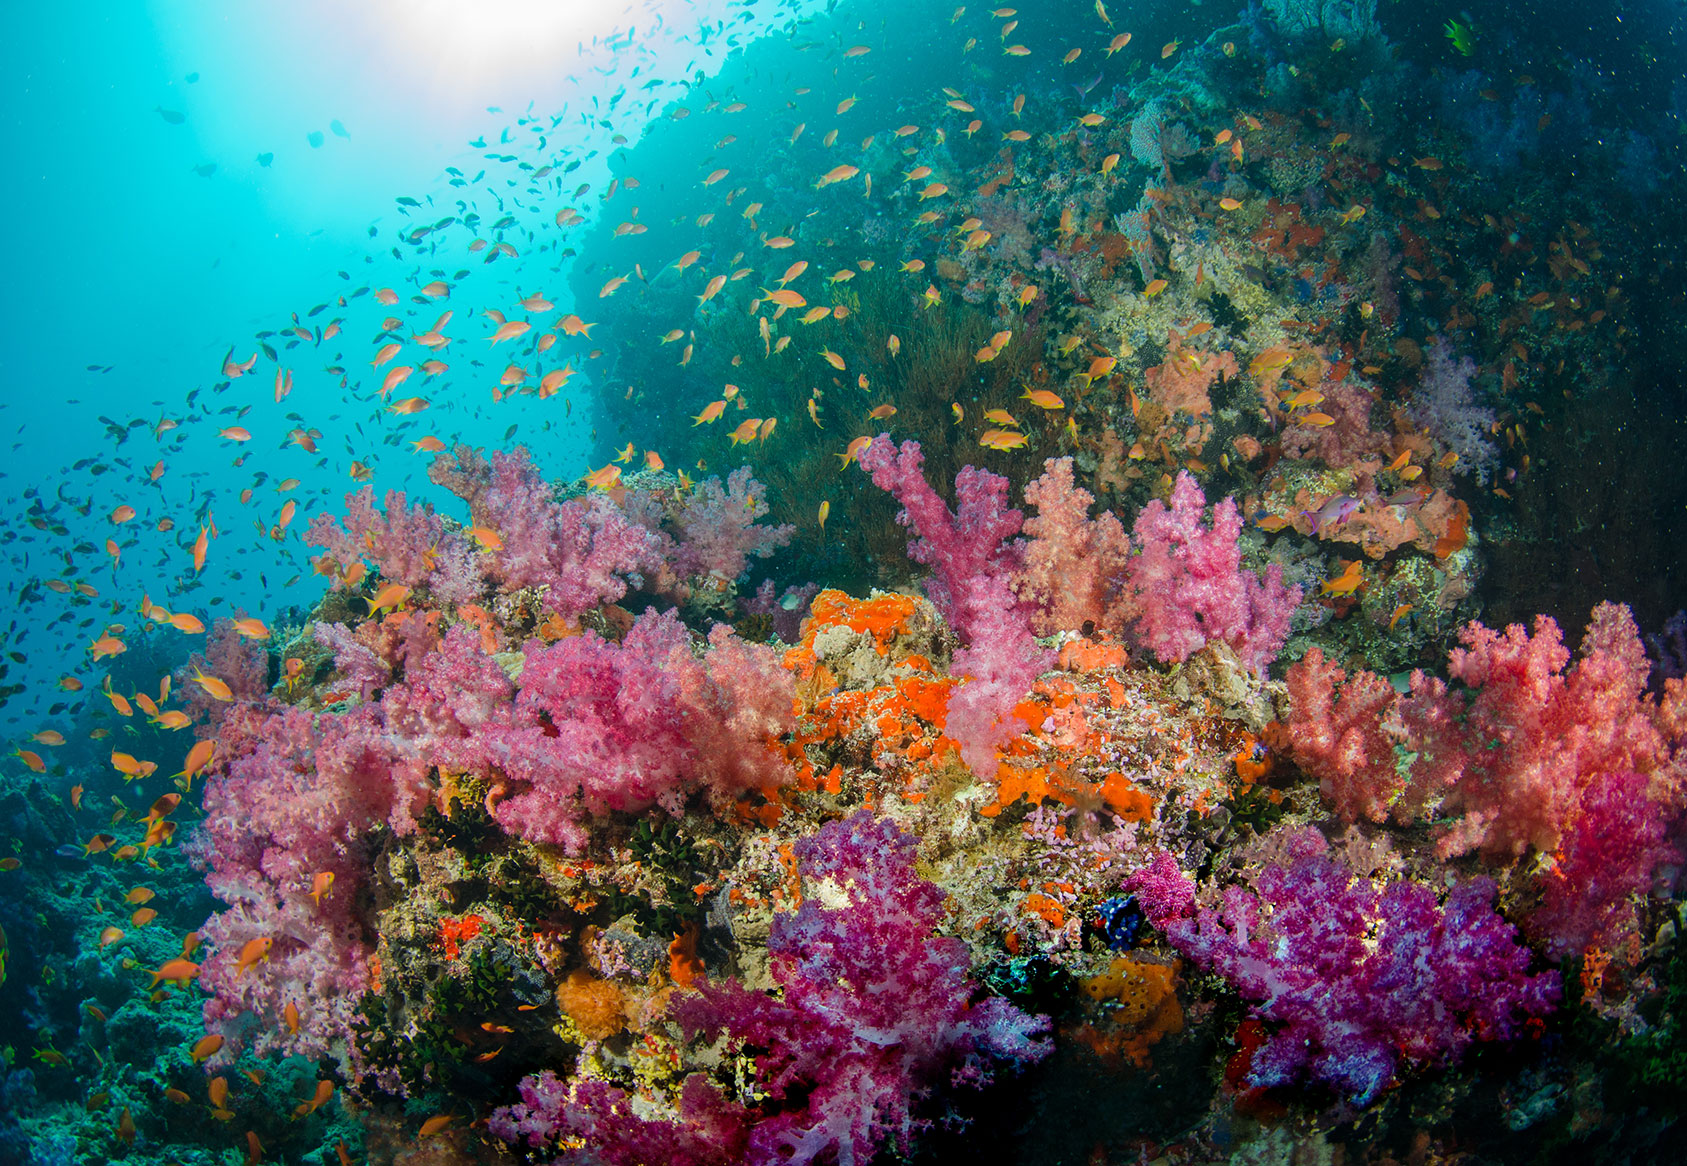 fiji underwater. softcorals,antias in sun light